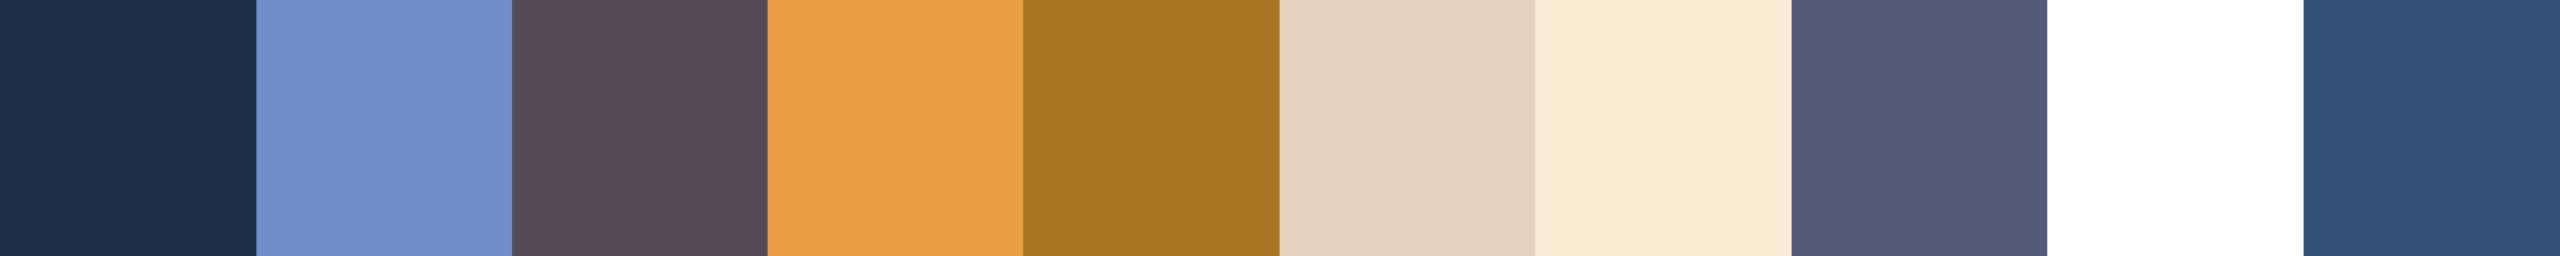 565 Hecuba Color Palette